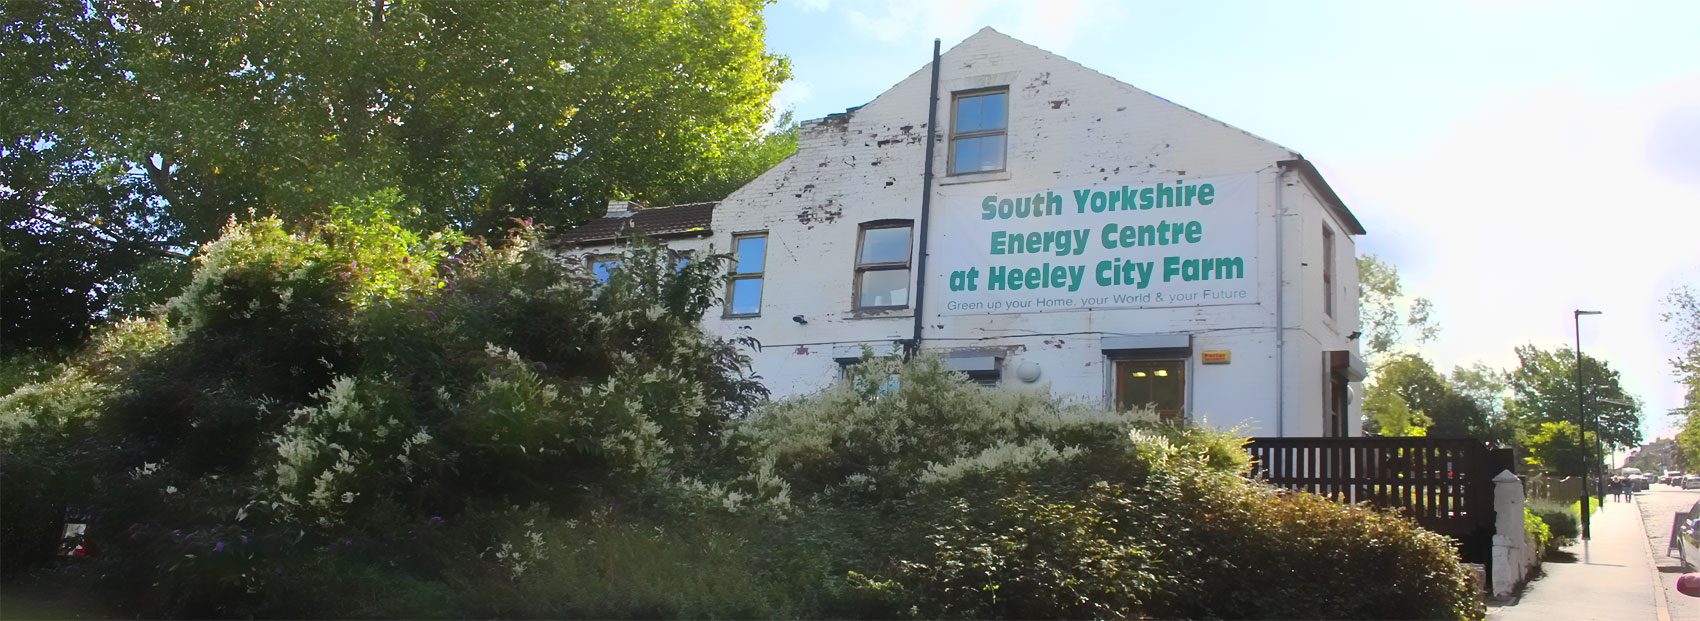 South Yorkshire Energy Centre in Sheffield (at the Heeley City Farm)